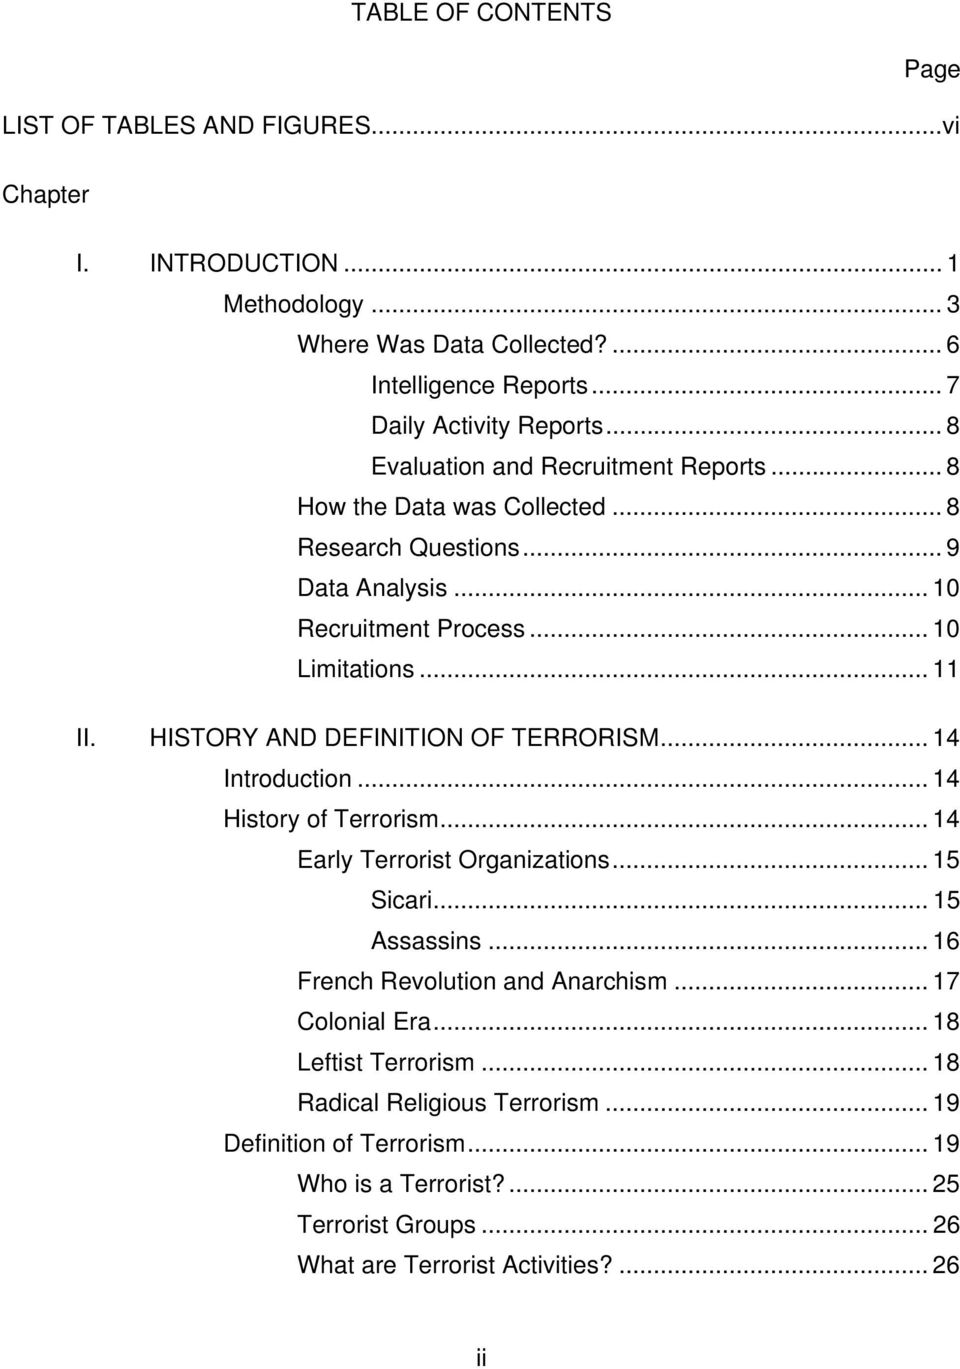 HISTORY AND DEFINITION OF TERRORISM... 14 Introduction... 14 History of Terrorism... 14 Early Terrorist Organizations... 15 Sicari... 15 Assassins... 16 French Revolution and Anarchism.